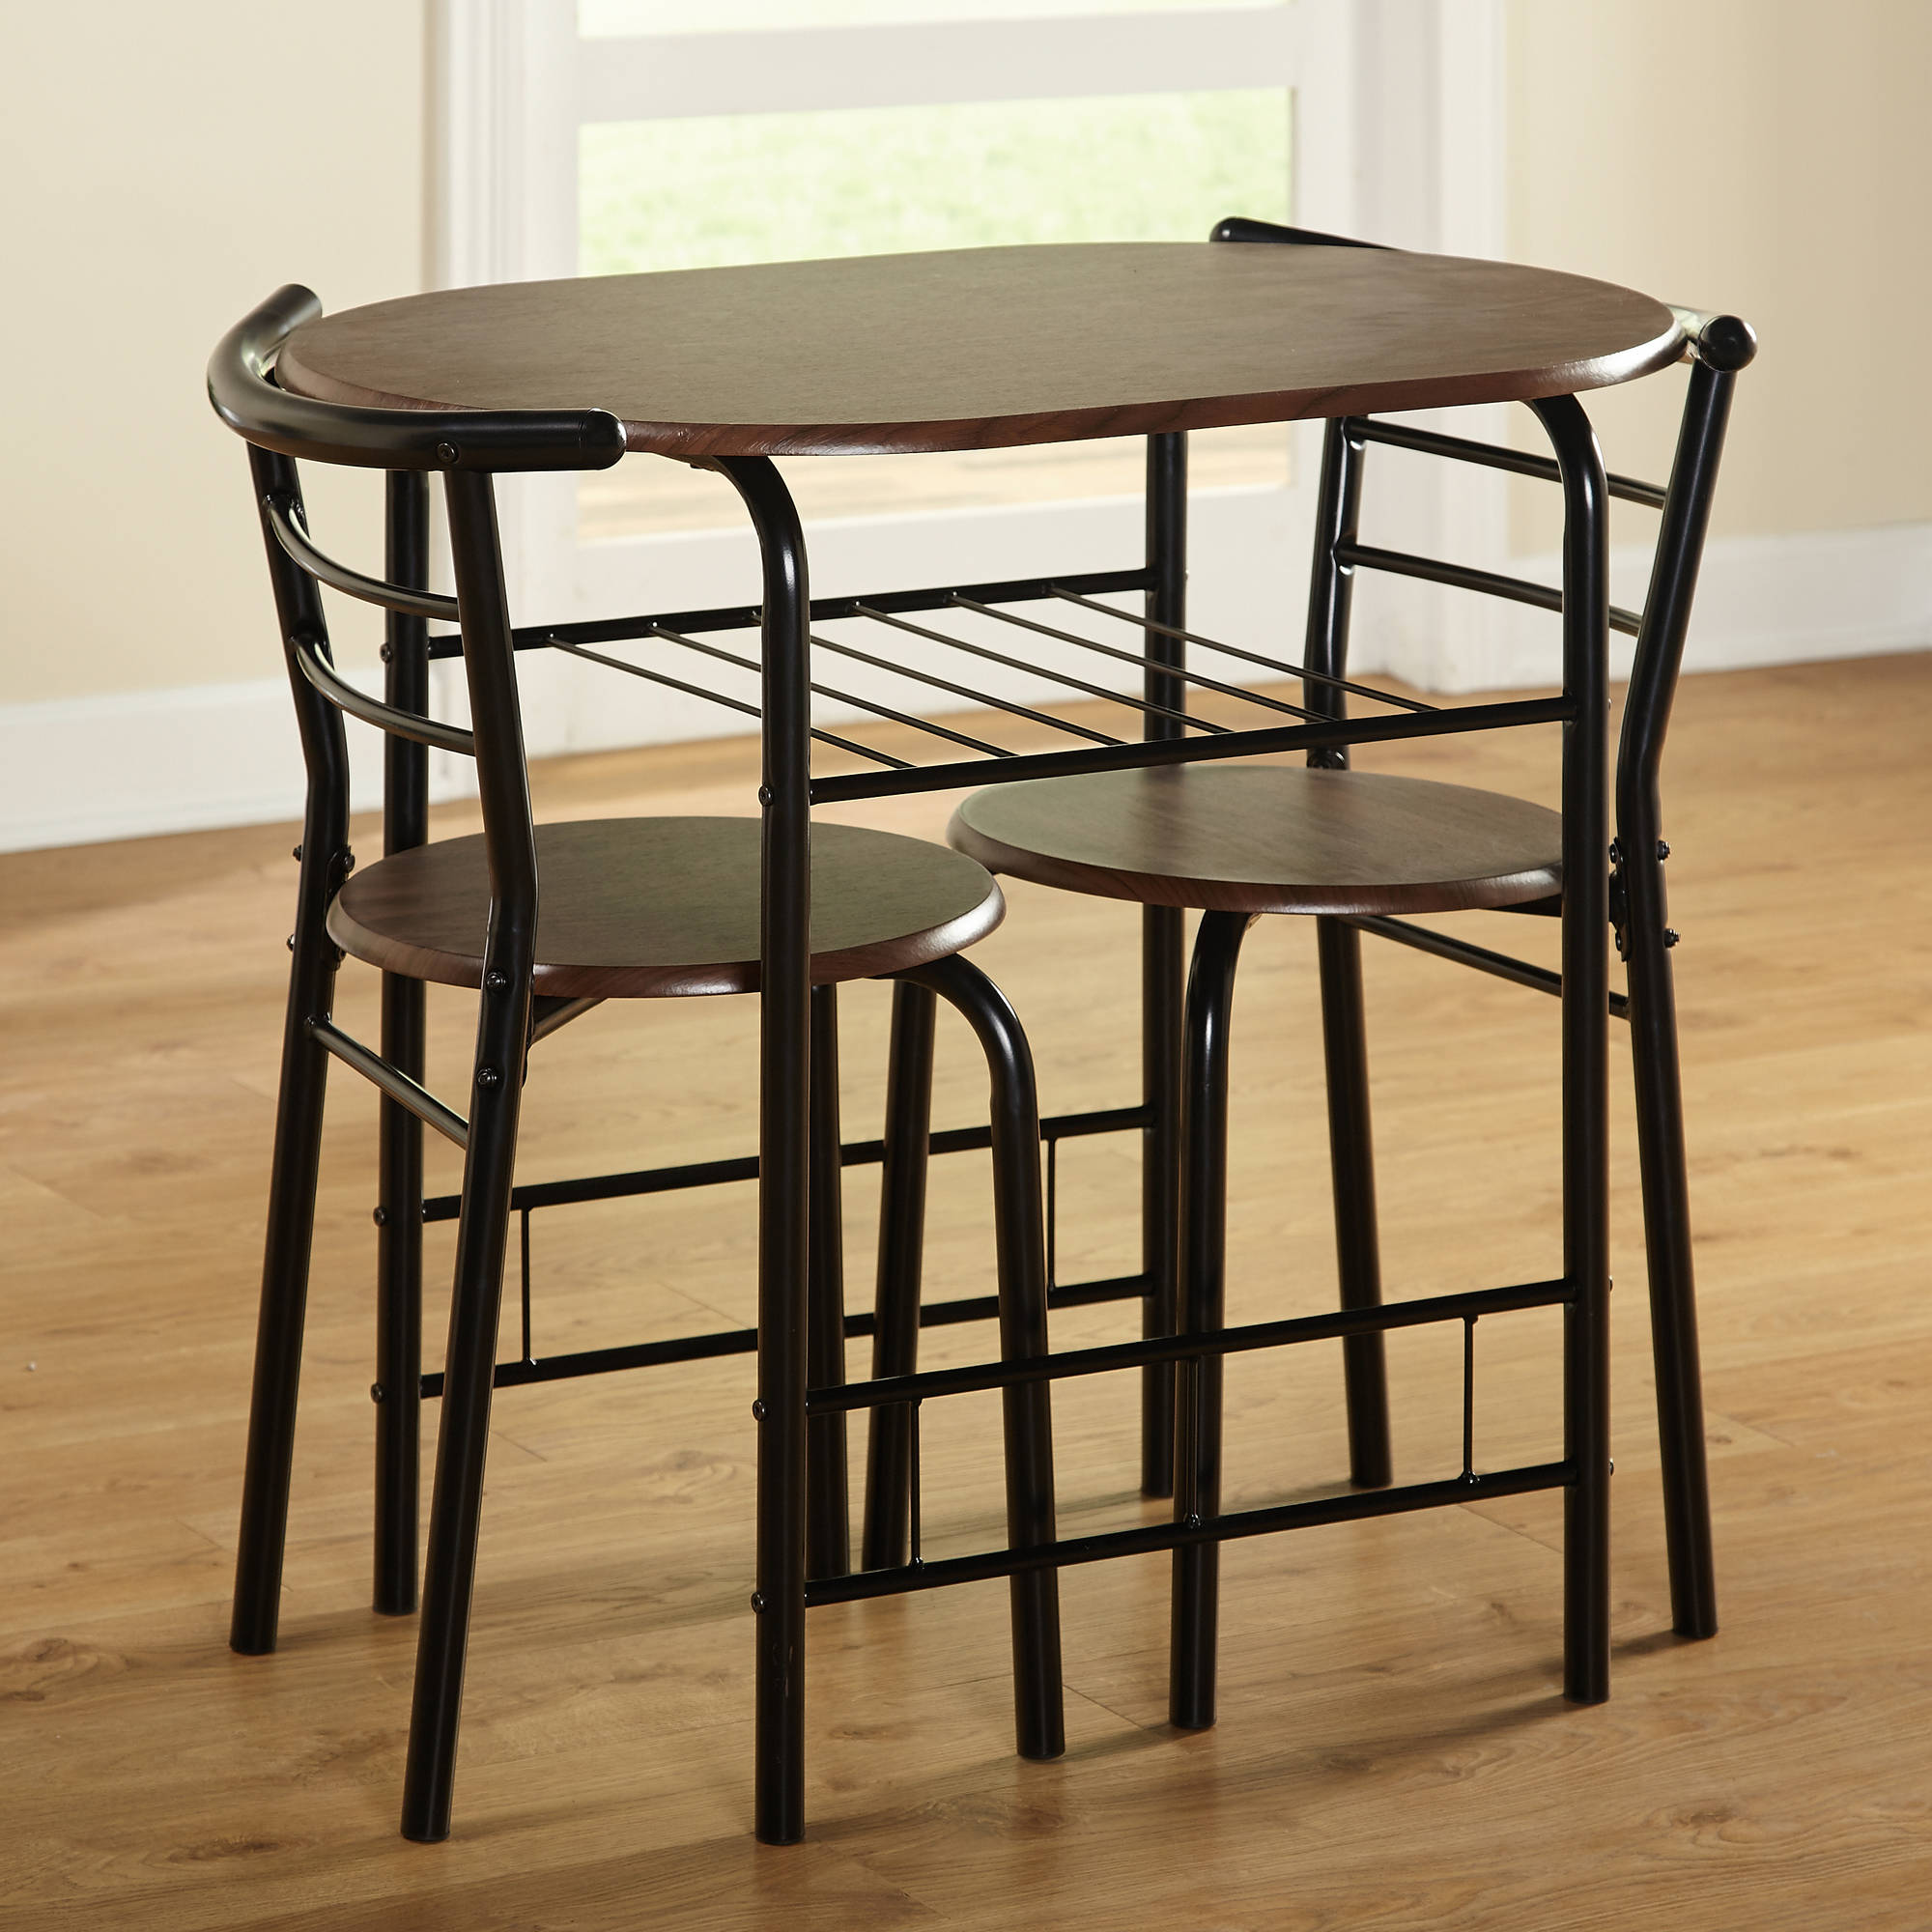 Indoor Bistro Table Chairs High Top Bistro Table Sets And Gorgeous Pub Table Sets Cheap